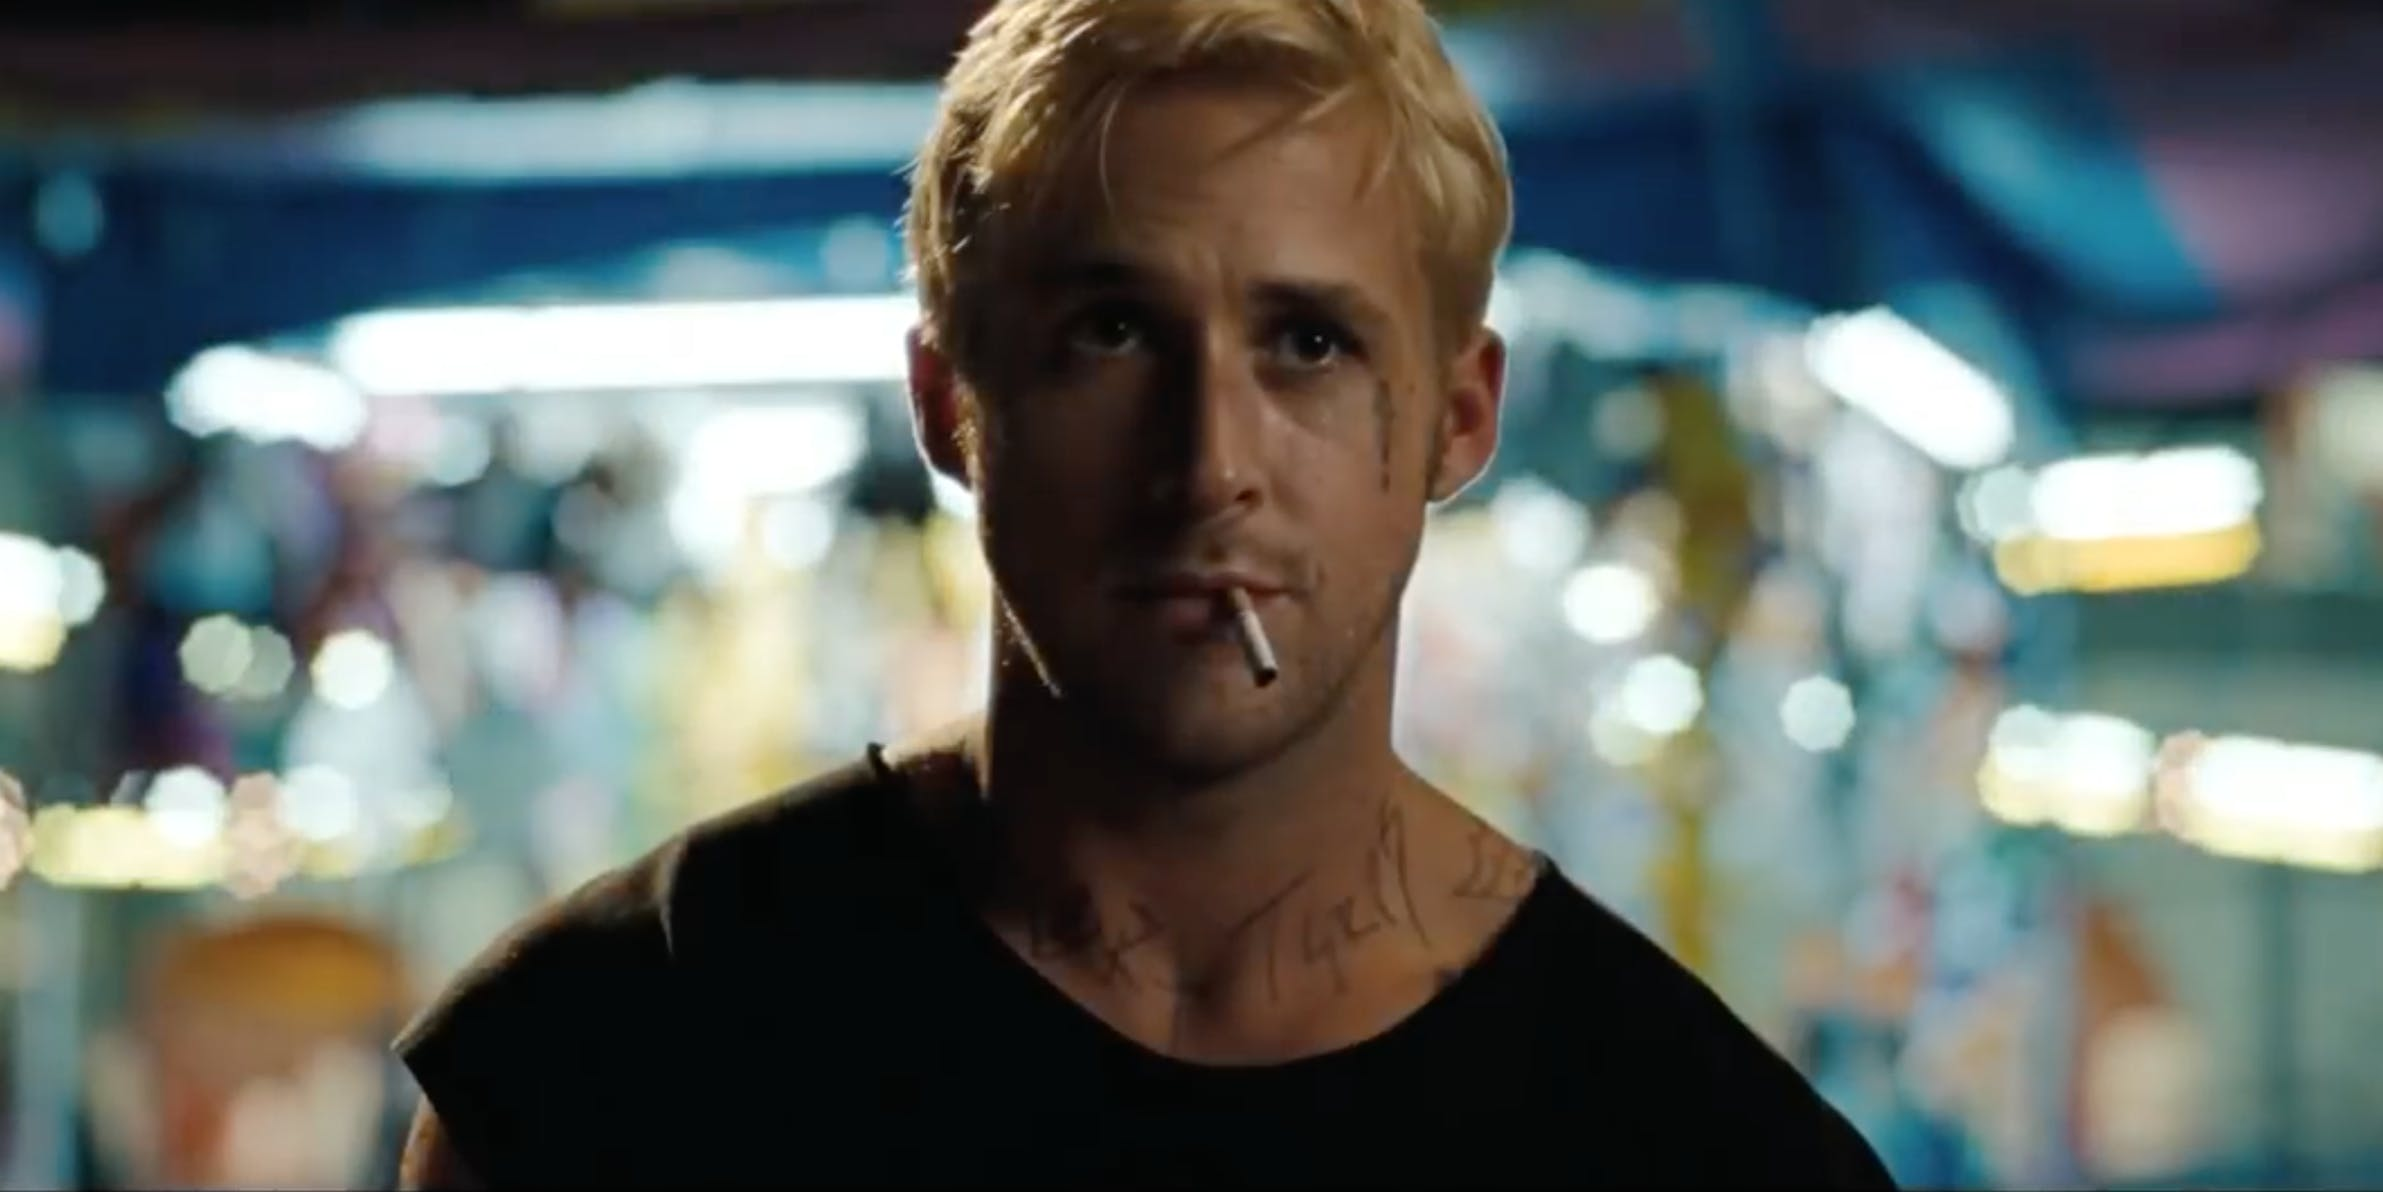 saddest moves netflix : The Place Beyond the Pines